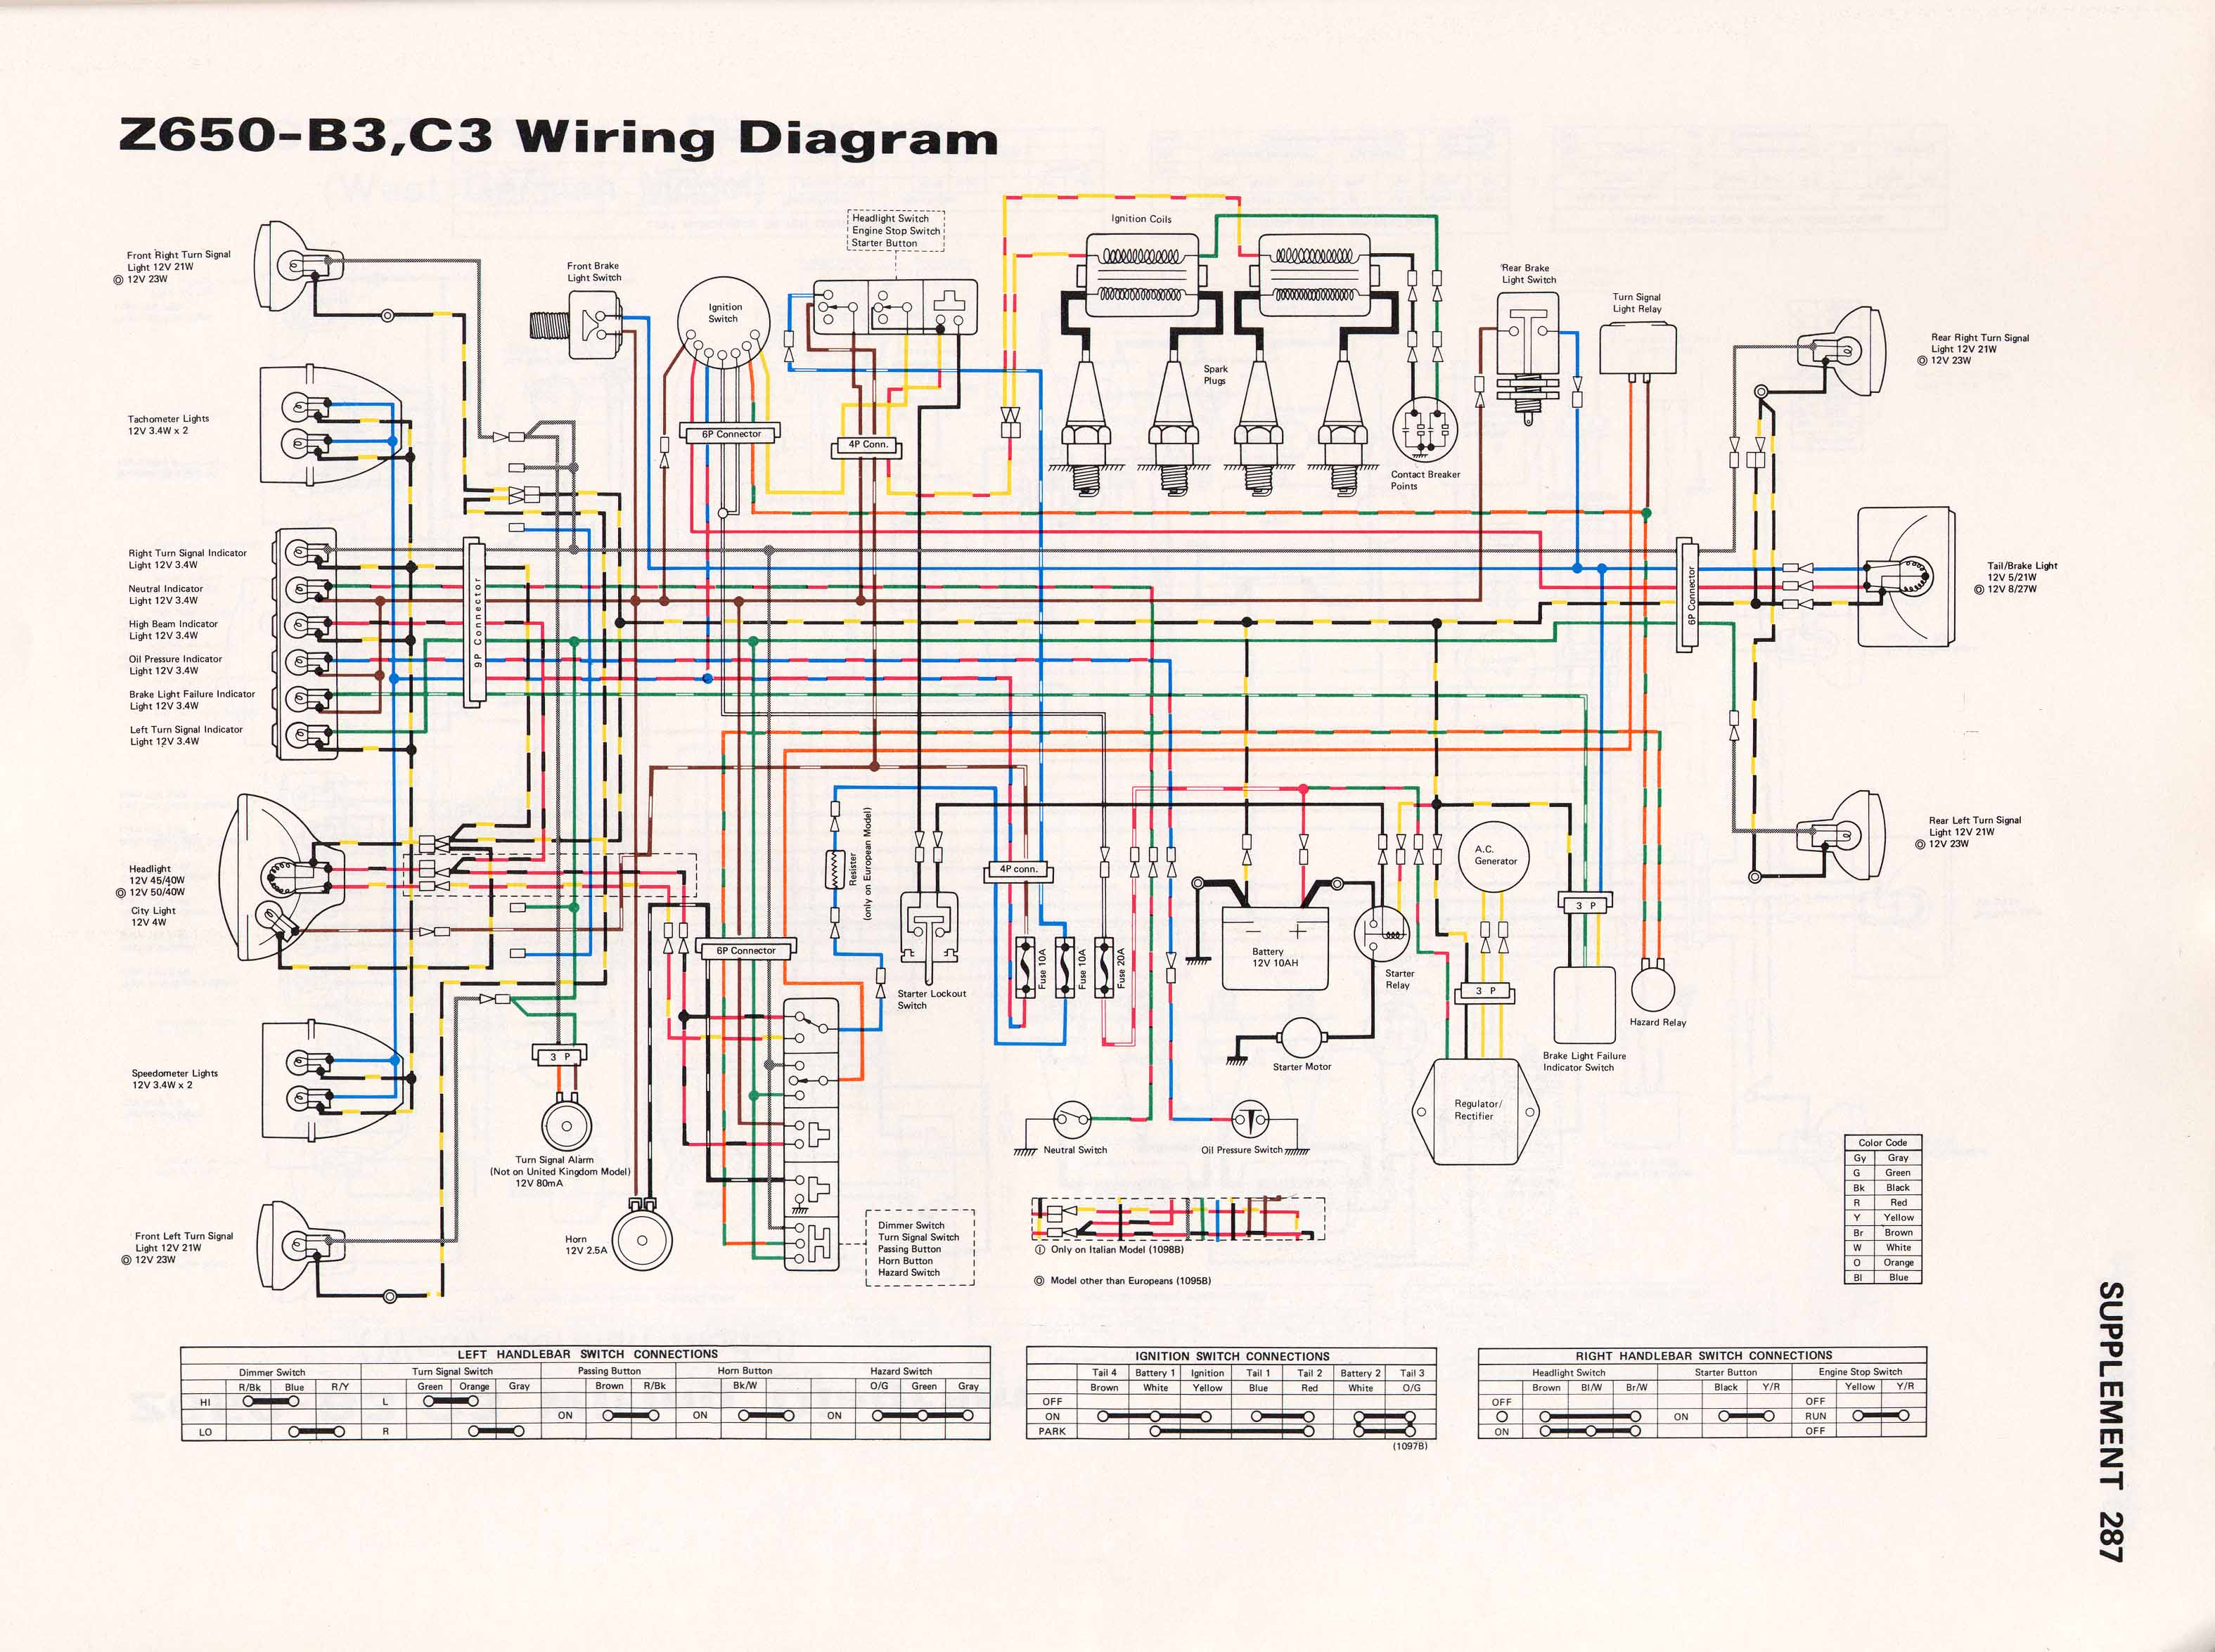 2003 Kawasaki Zx9r Wiring Diagram - 2001 Audi Tt Engine Diagram -  light-switch.tukune.jeanjaures37.fr | 2003 Kawasaki Zx9r Wiring Diagram |  | Wiring Diagram Resource